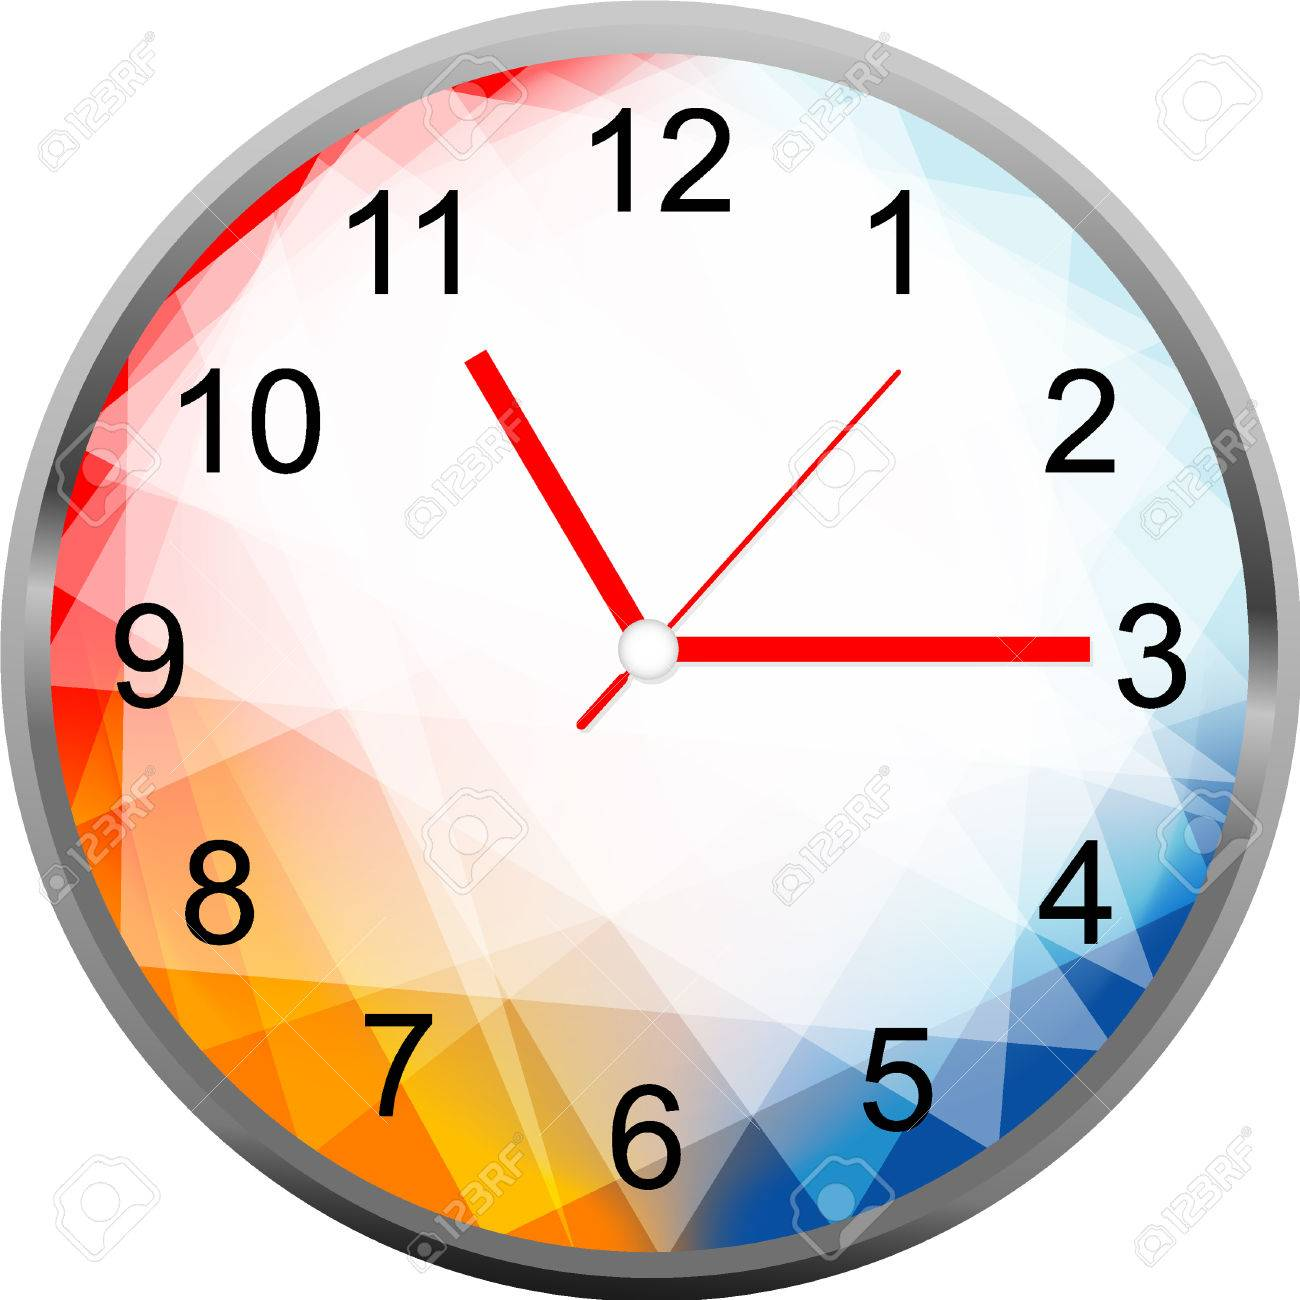 creative clock face geometry design royalty free cliparts vectors